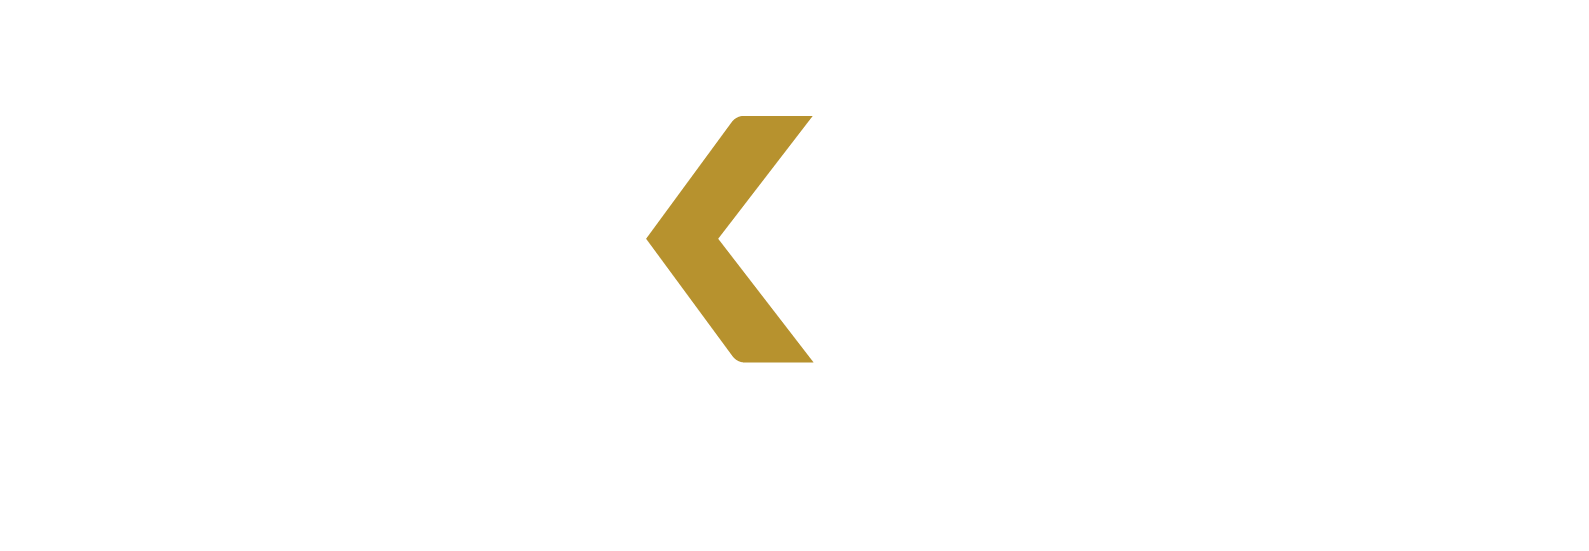 Rakotta Holdings Inc